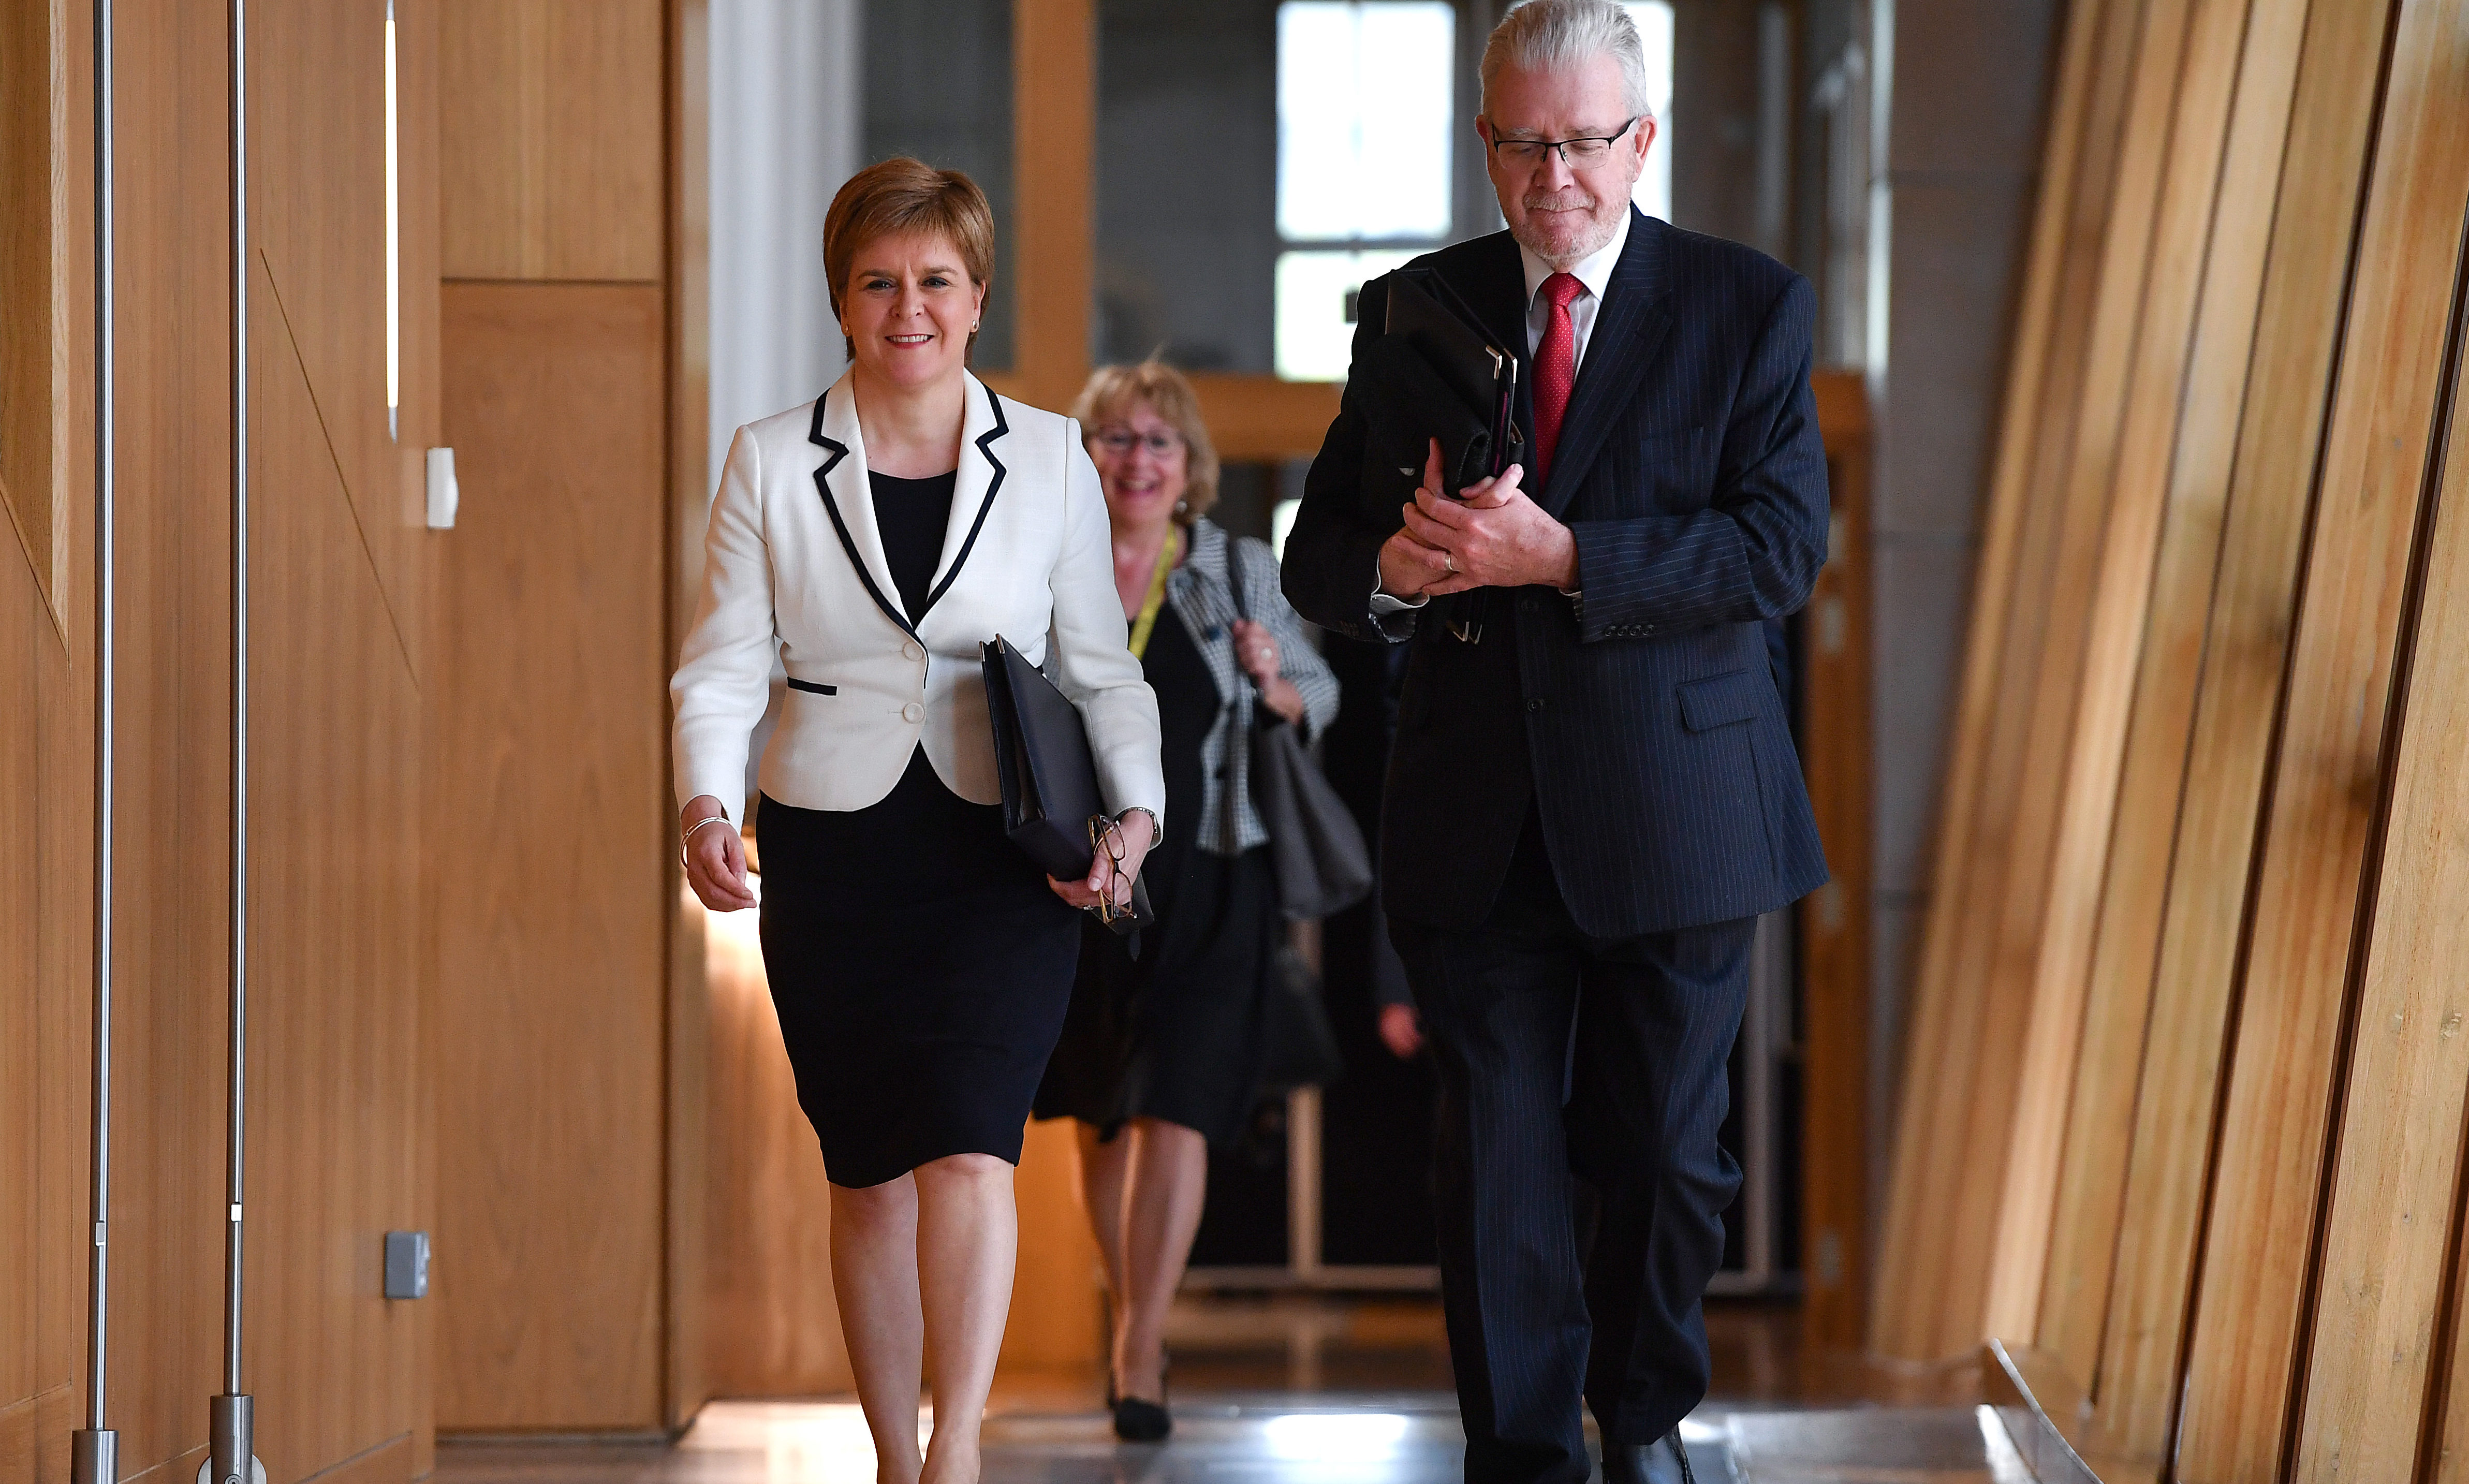 First Minister of Scotland Nicola Sturgeon, arrives at the Scottish Parliament to update MSPs on Brexit and her plans for Scottish independence.